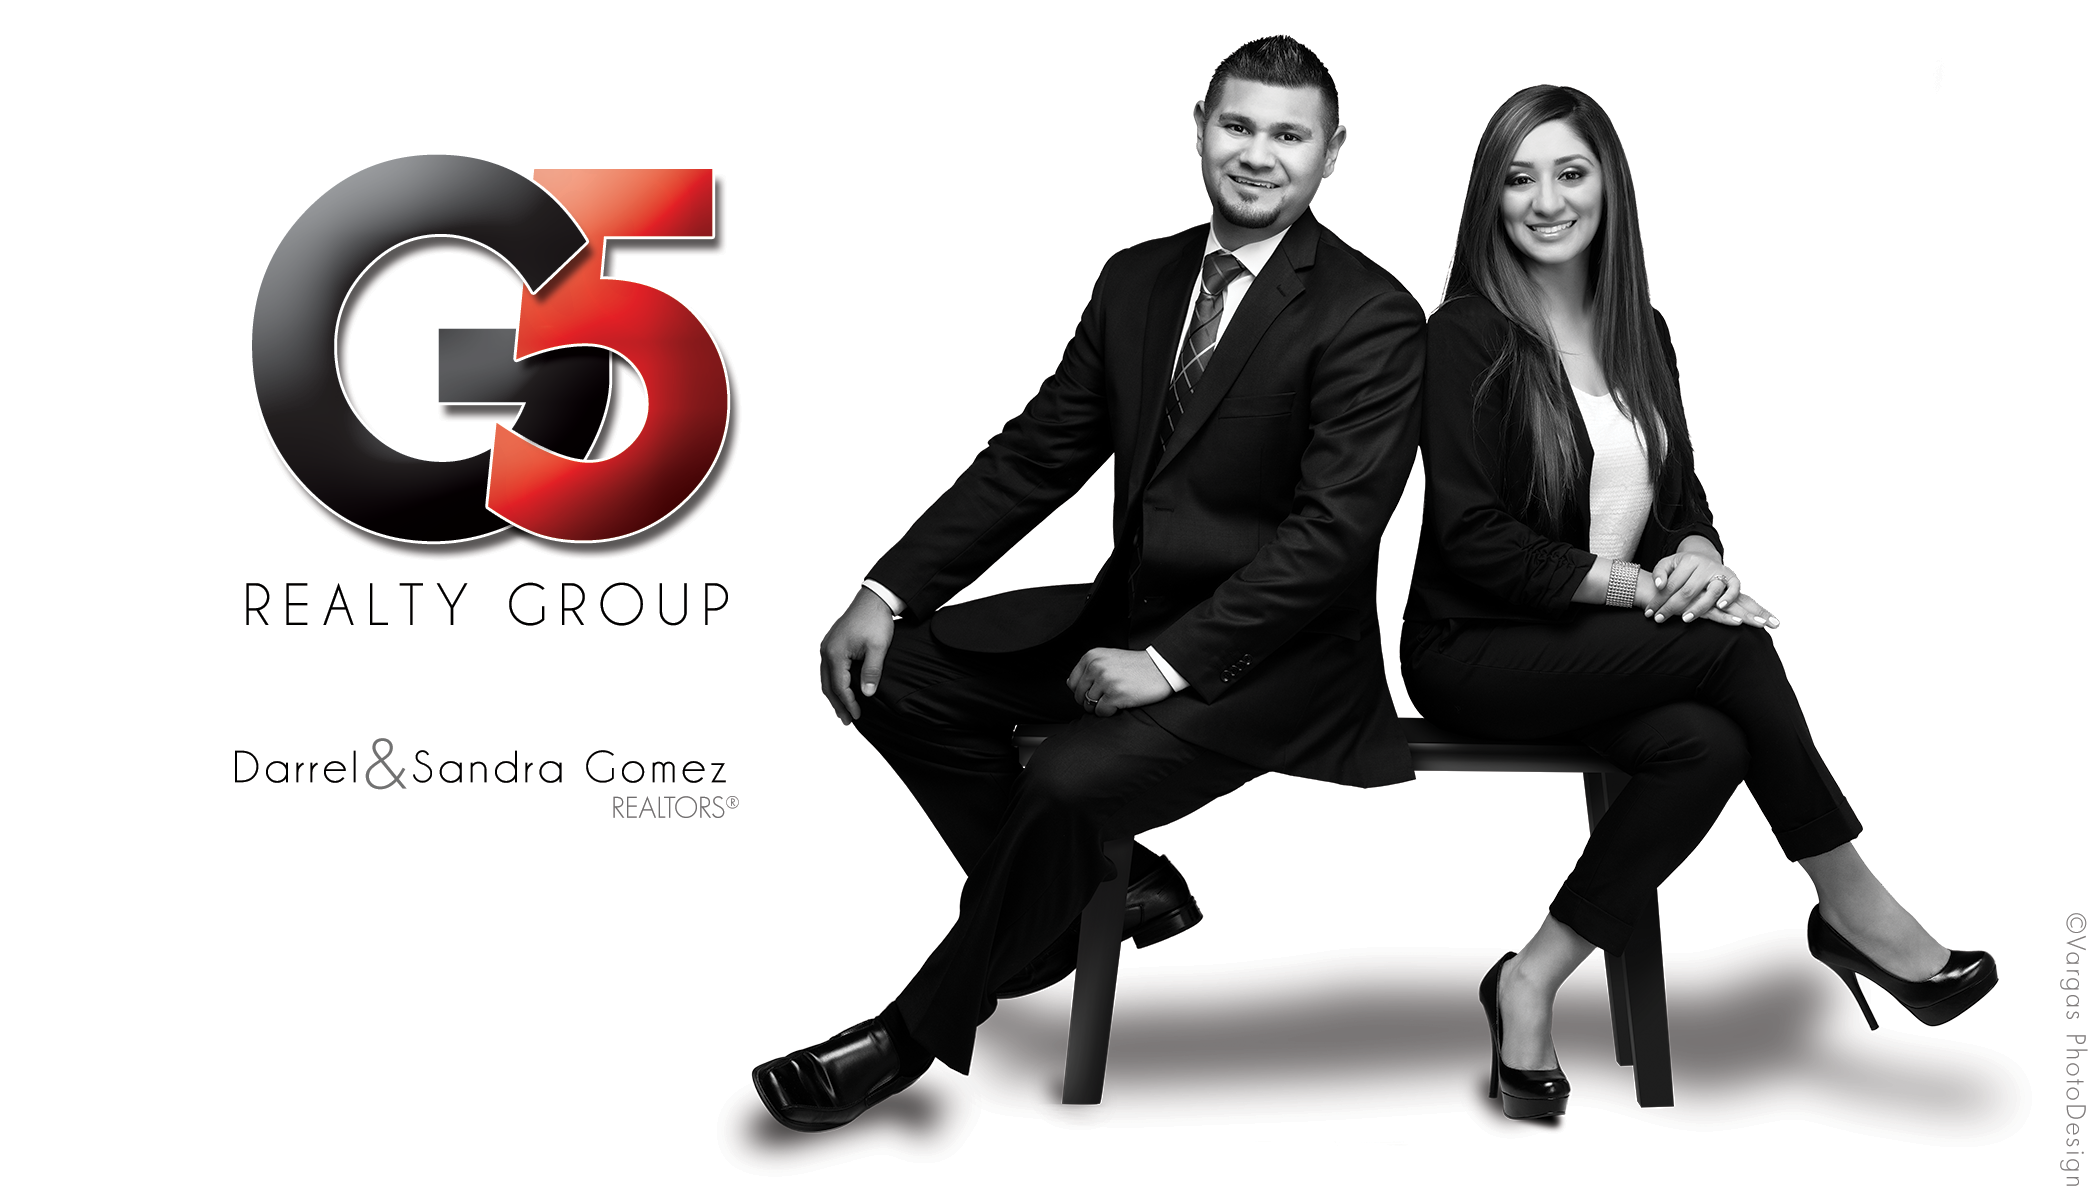 Darrel-Sandra-Gomez-G5-Realty-Group.png